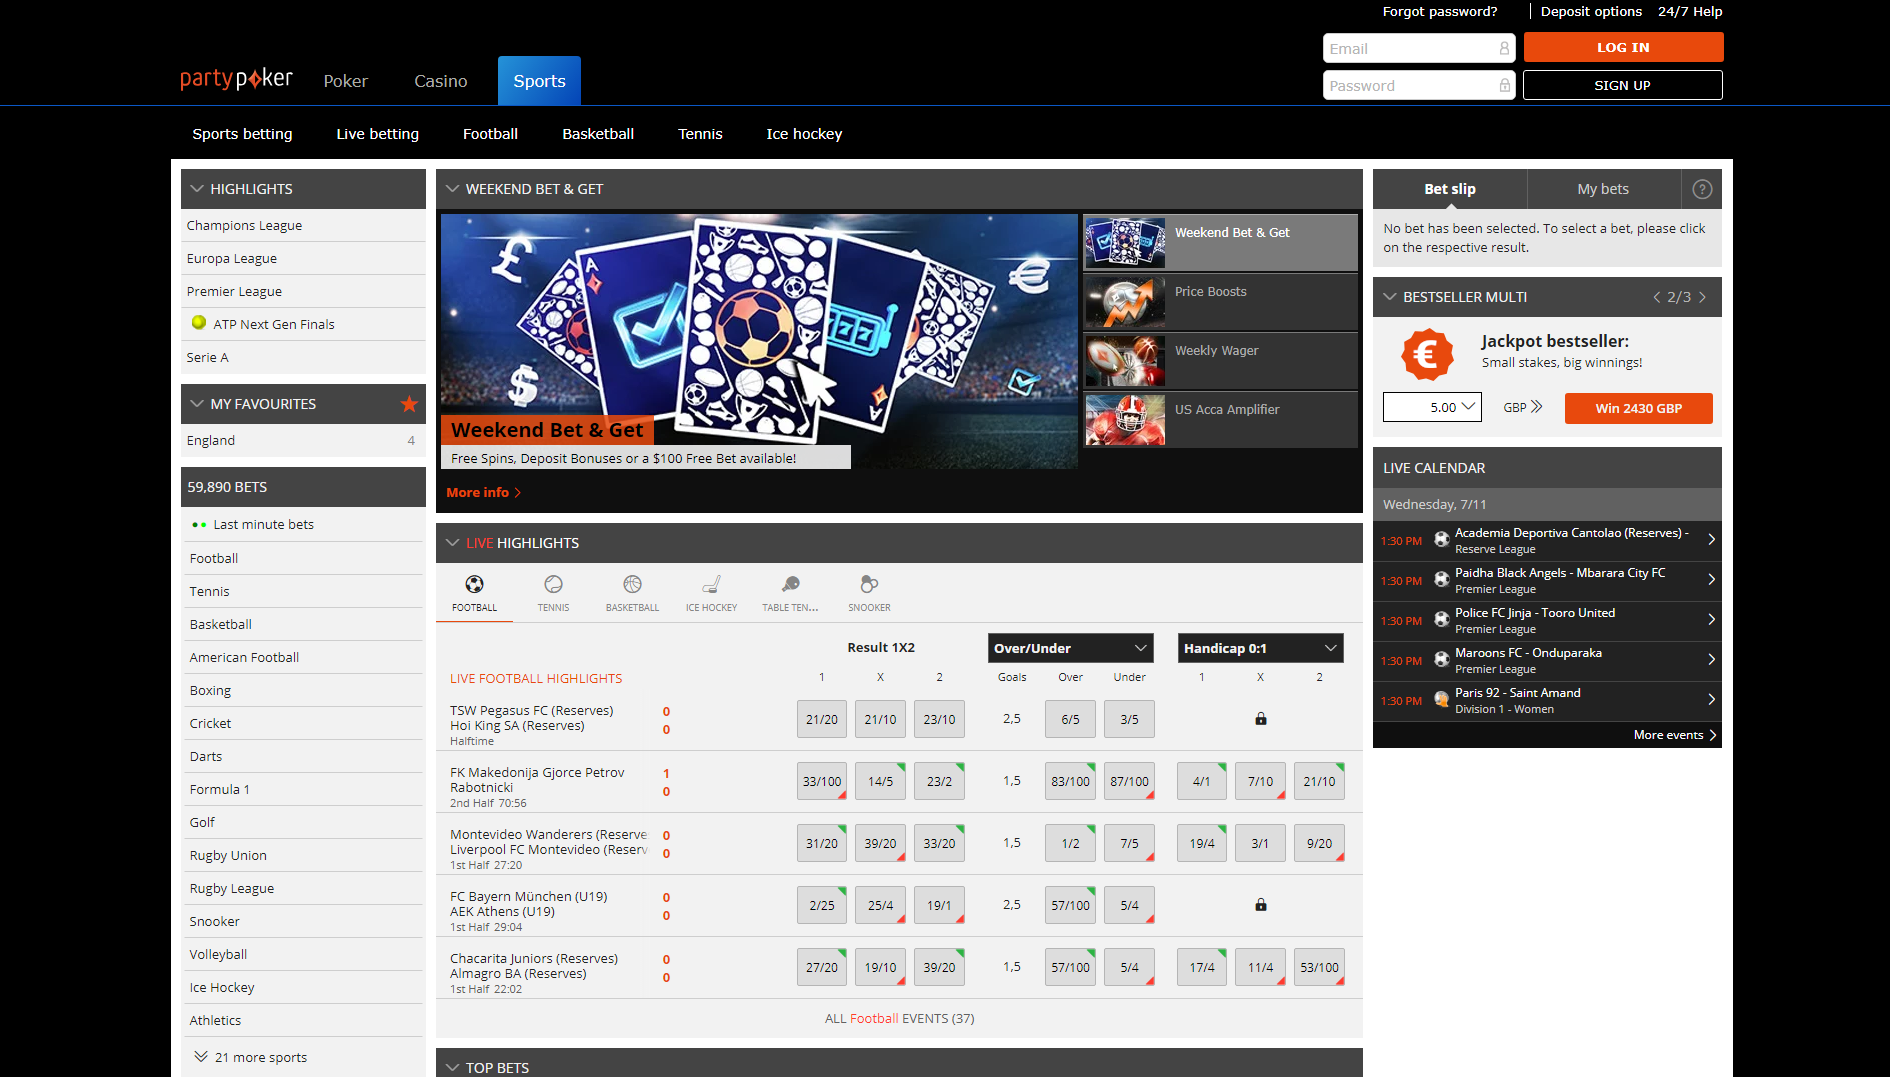 party poker sportsbook